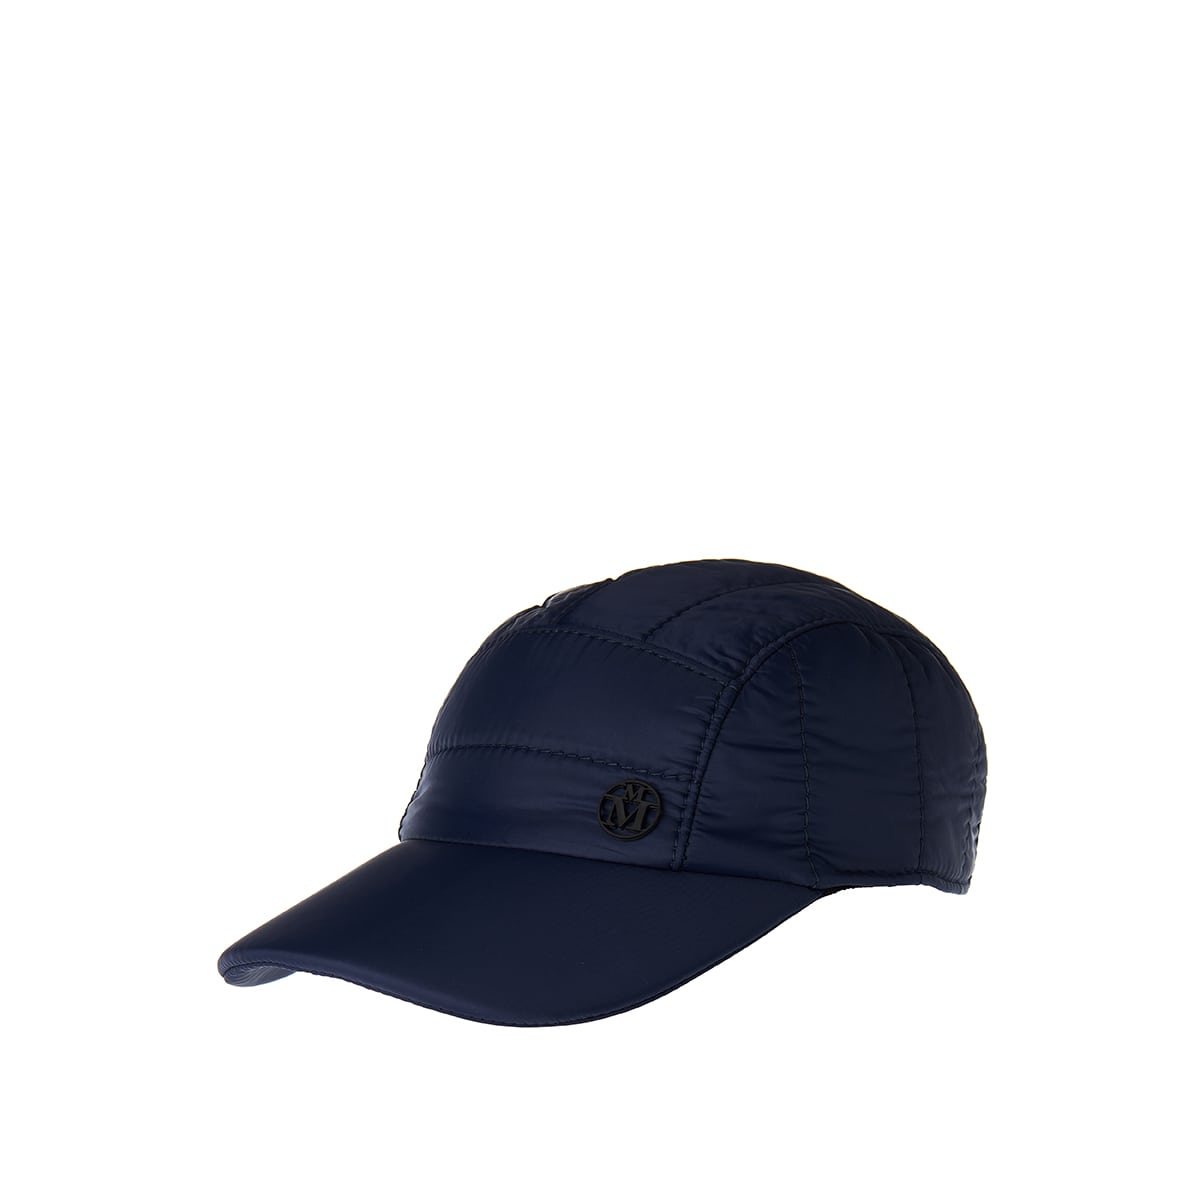 Nell quilted nylon baseball cap